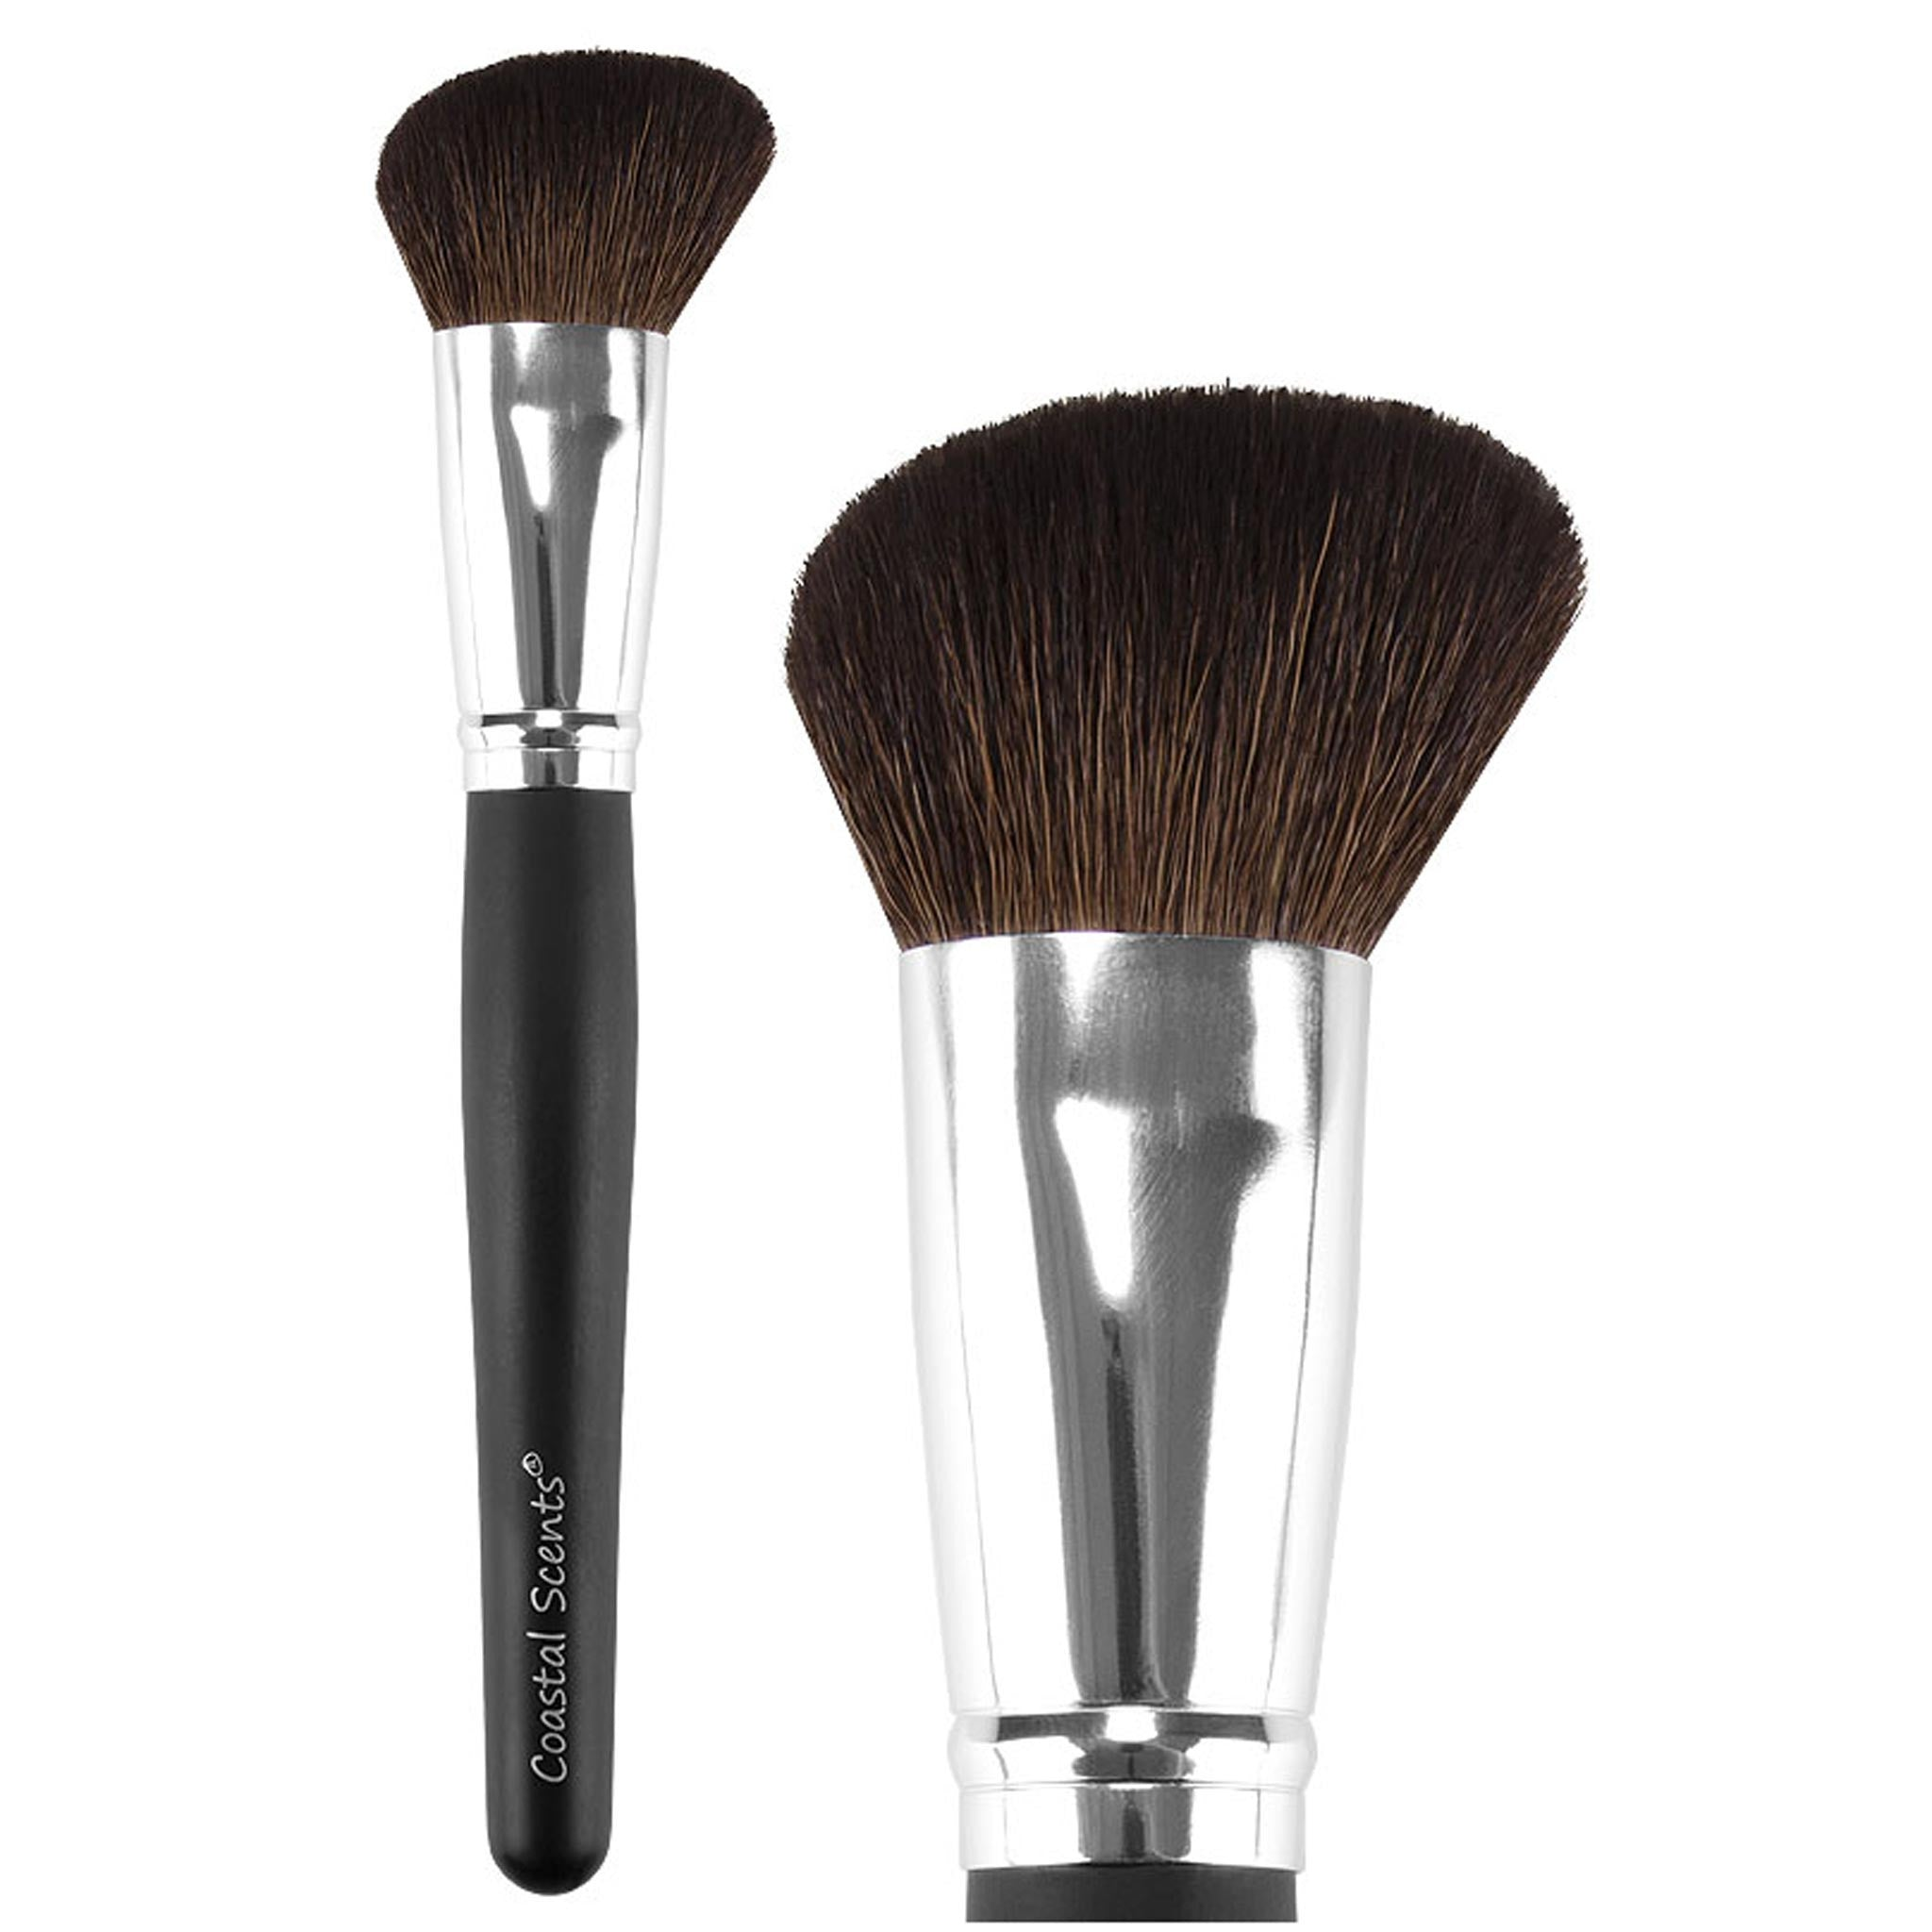 Coastal Scents coupon: Classic Angled Powder Brush Natural